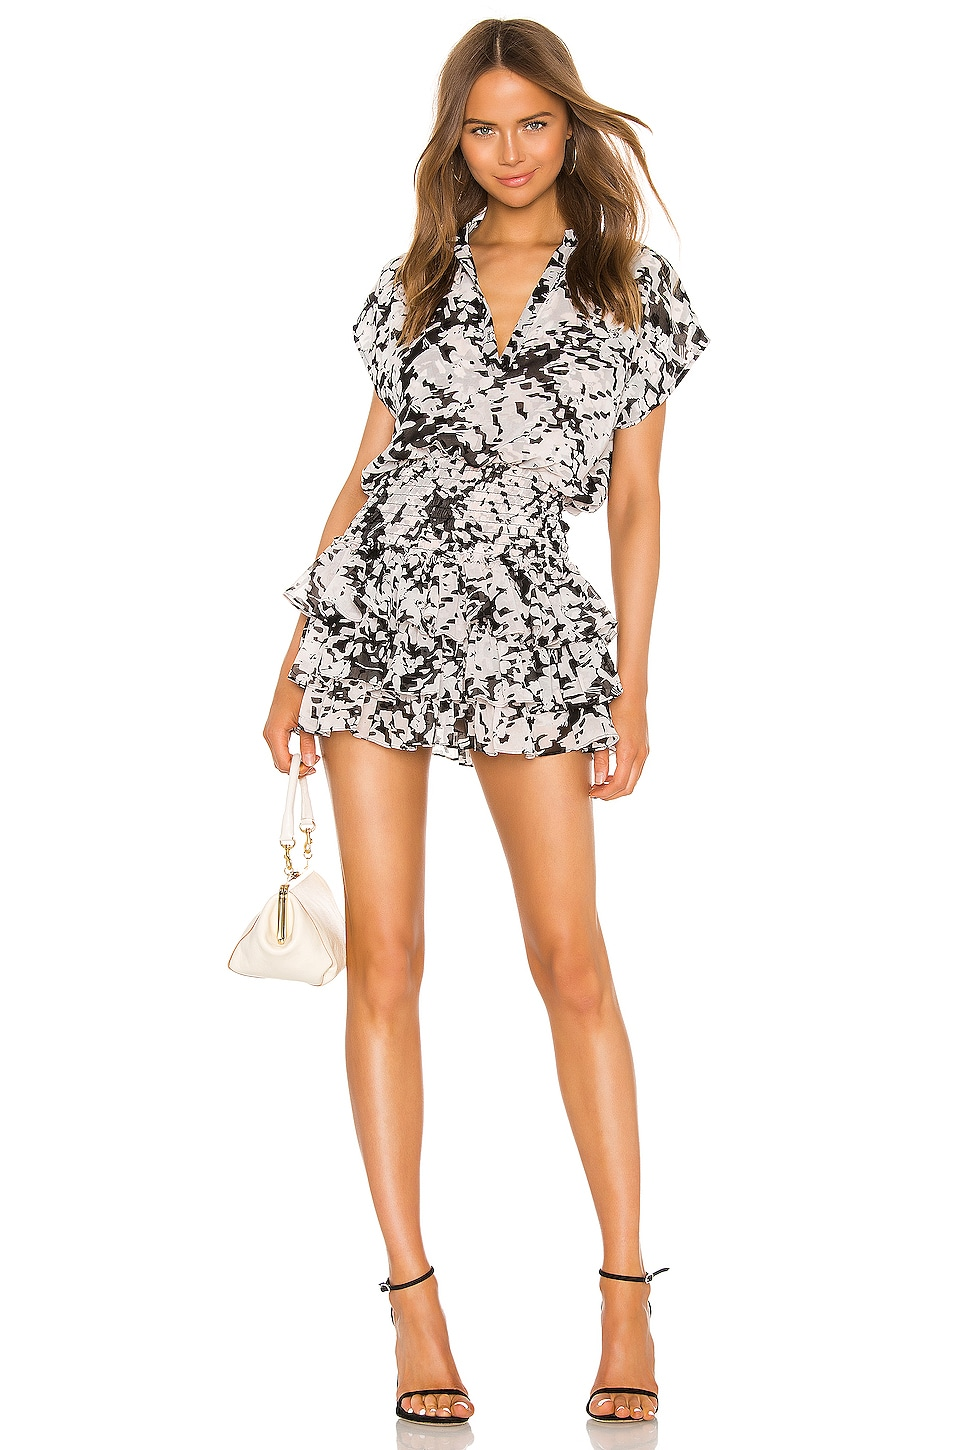 MISA Los Angeles Eloisa Dress in Black White Floral